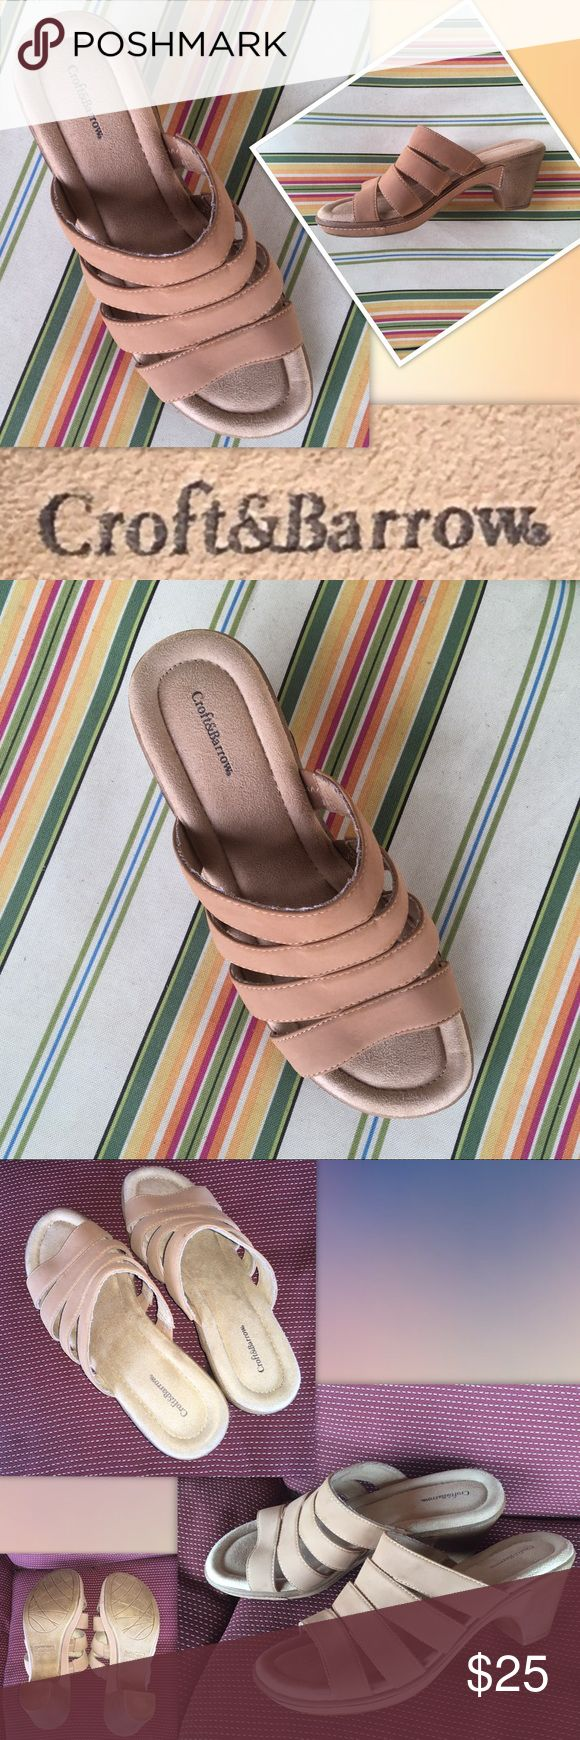 """🆕Stylish sandals from Croft & Barrow (EUC) Croft & Barrow® Women's Slide size 8 Med  SANDAL FEATURES * Strappy design * Tan color * Woman's Size 8 SANDAL CONSTRUCTION * Manmade upper * Faux-suede lining SANDAL DETAILS * Open toe * Slip-on * Padded footbed * 2.5"""" heel * .75-in. platform  Very Clean upper and inner. Excellent used condition. croft & barrow Shoes Heels"""